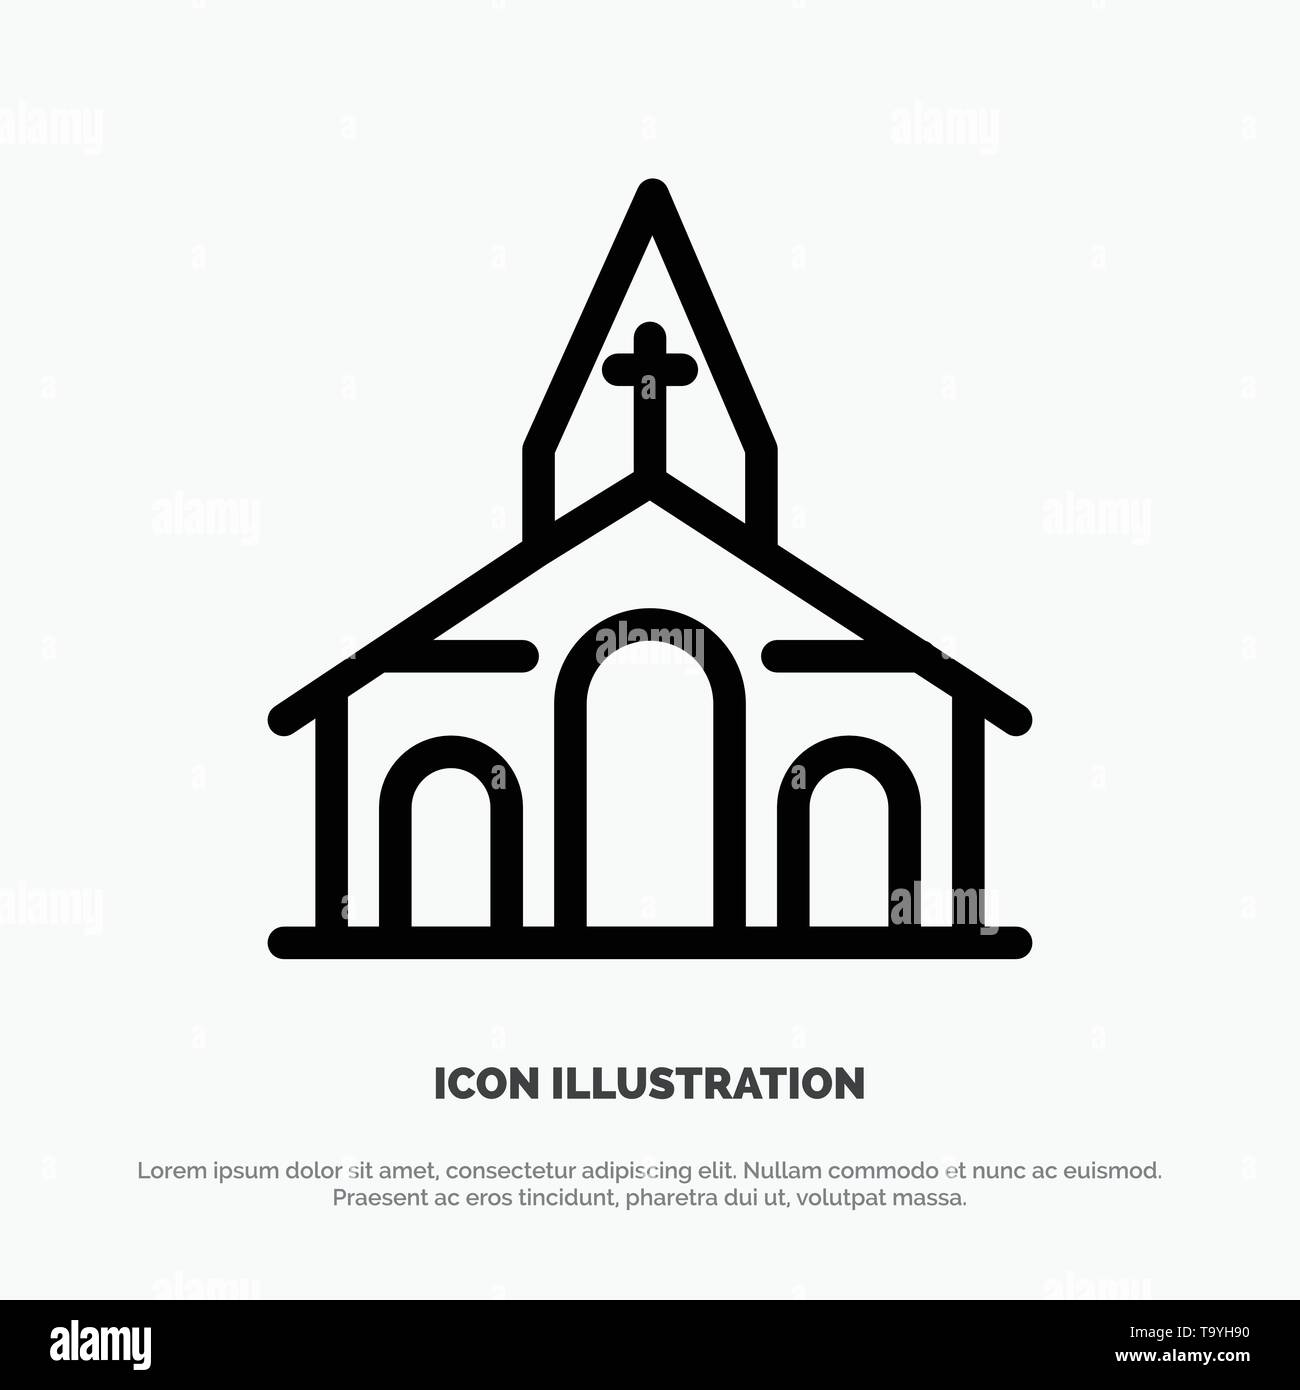 Building, Christmas, Church, Spring Line Icon Vector - Stock Image